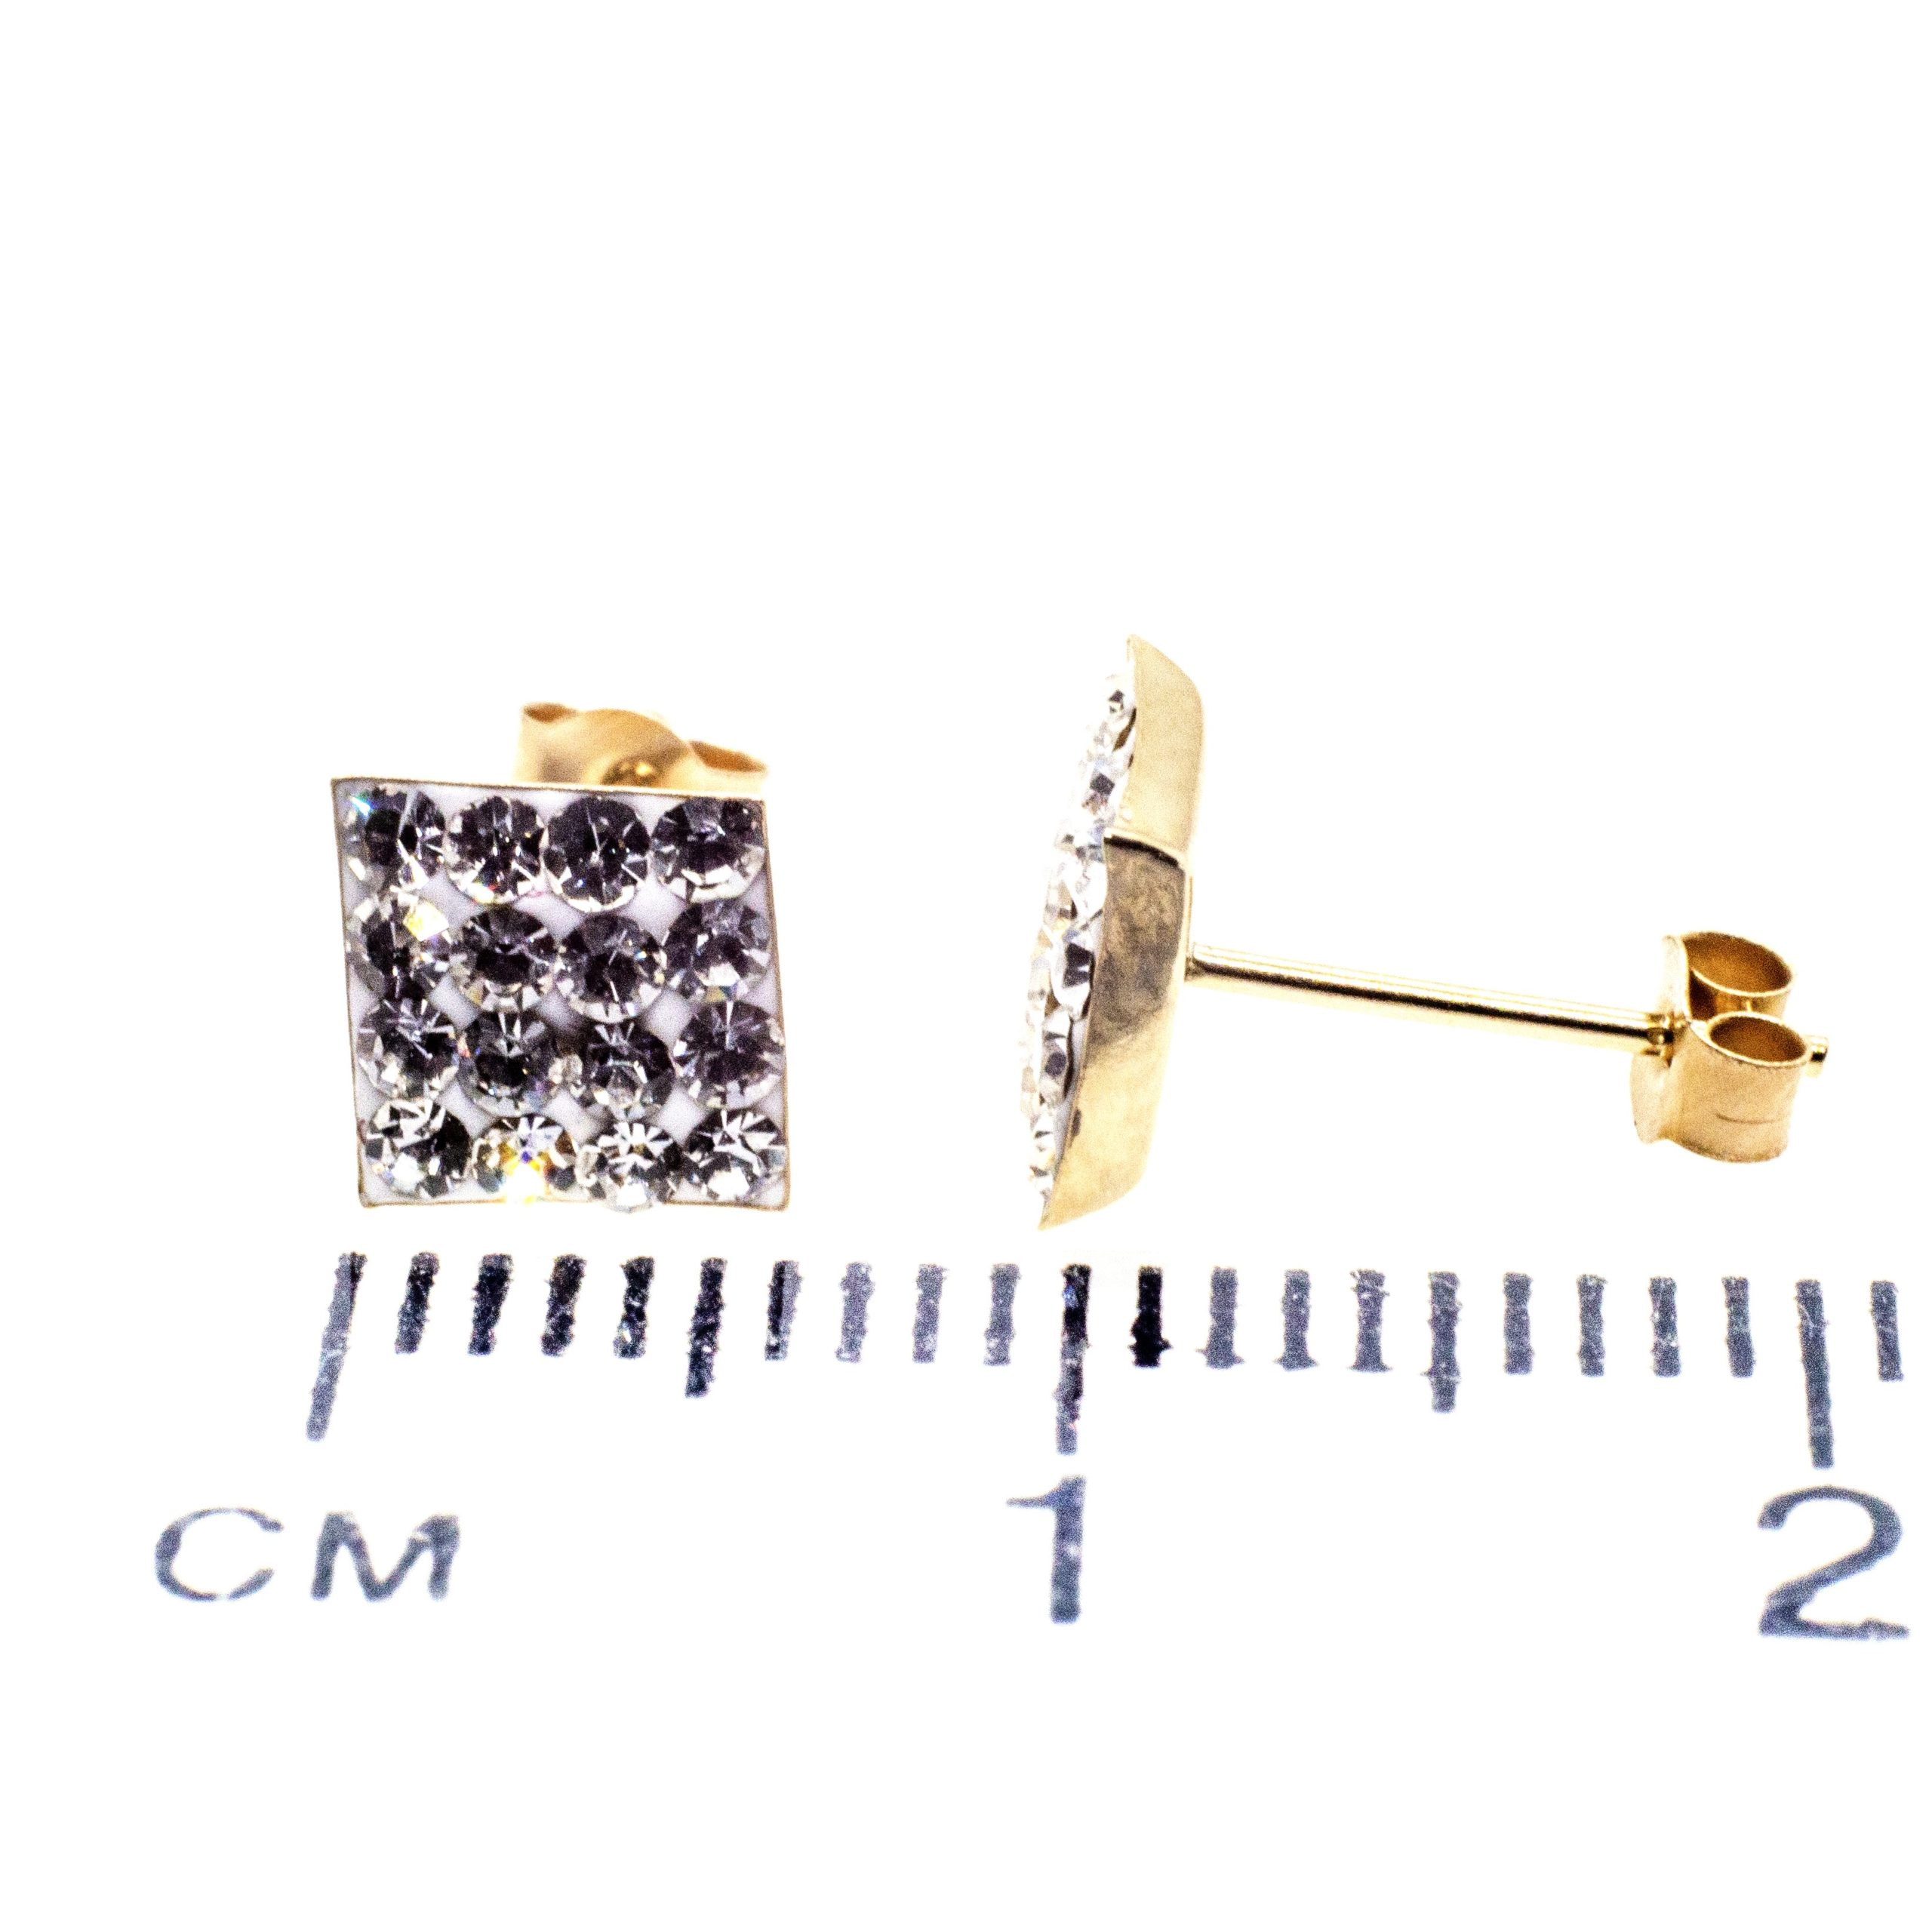 7mm square stud earring 9ct gold with Austrian crystal gems ruler